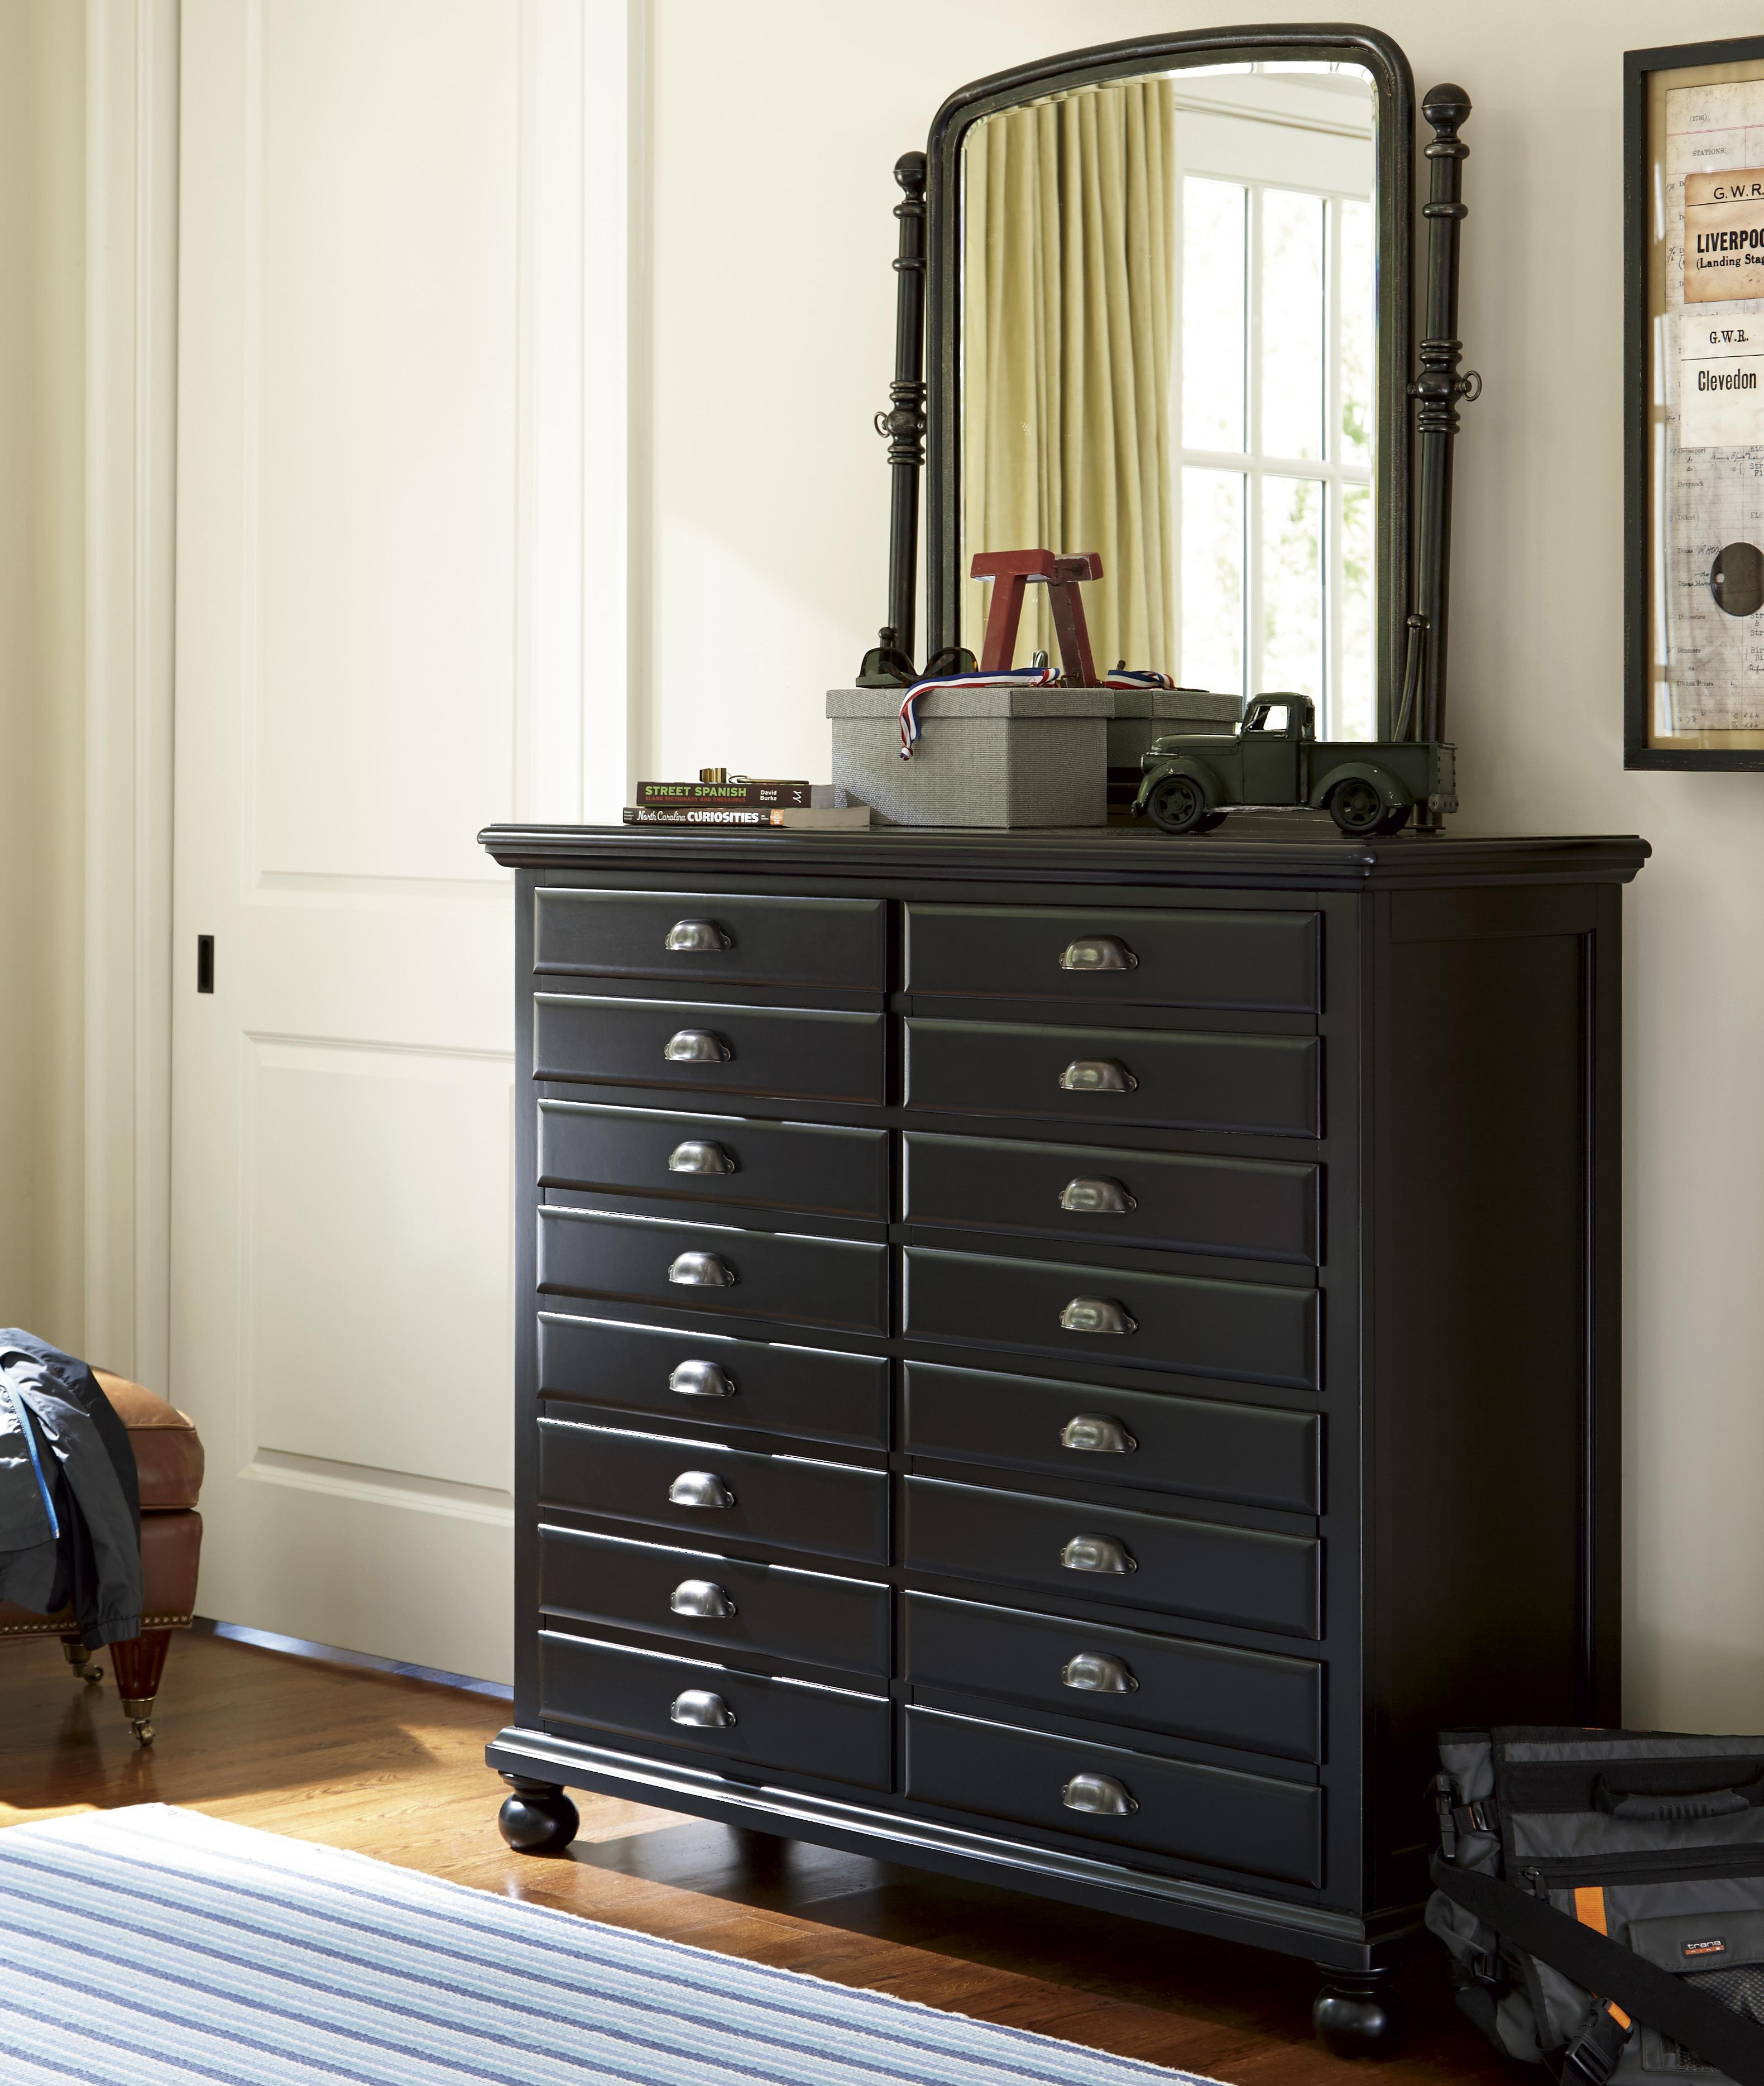 Smartstuff Black and White Dresser and Mirror Combo - Item Number: 437B033+005